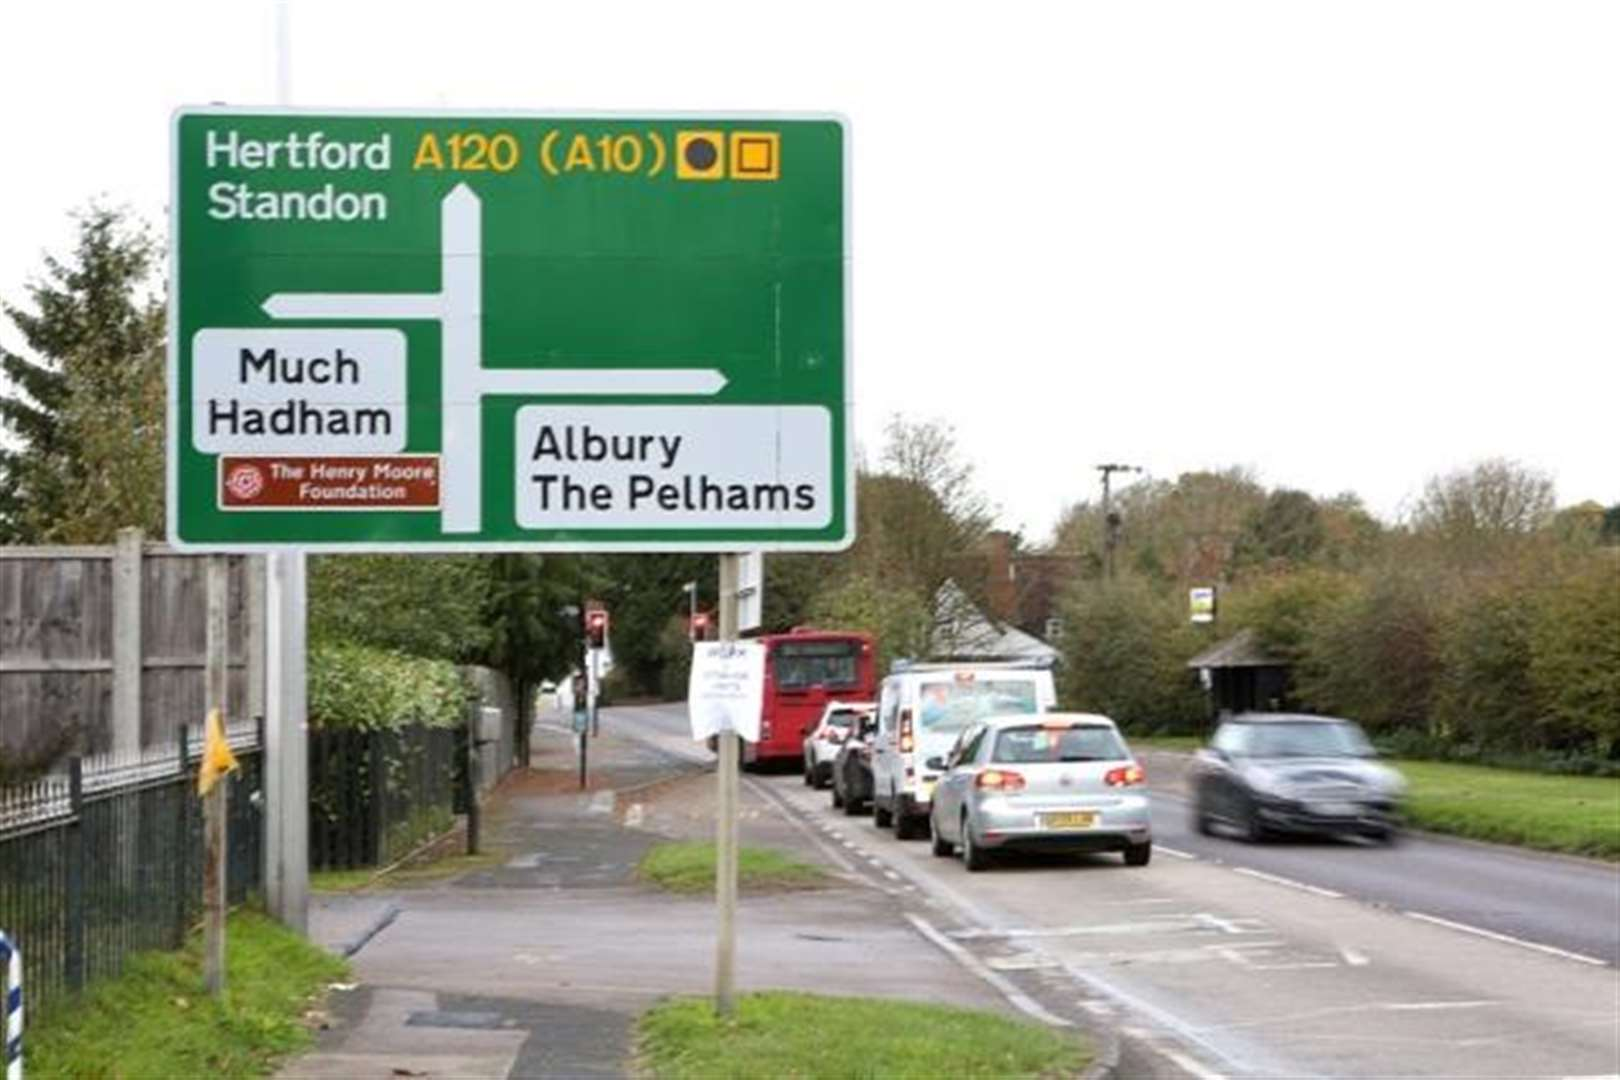 Public inquiry puts the brakes on A120 Little Hadham bypass plans